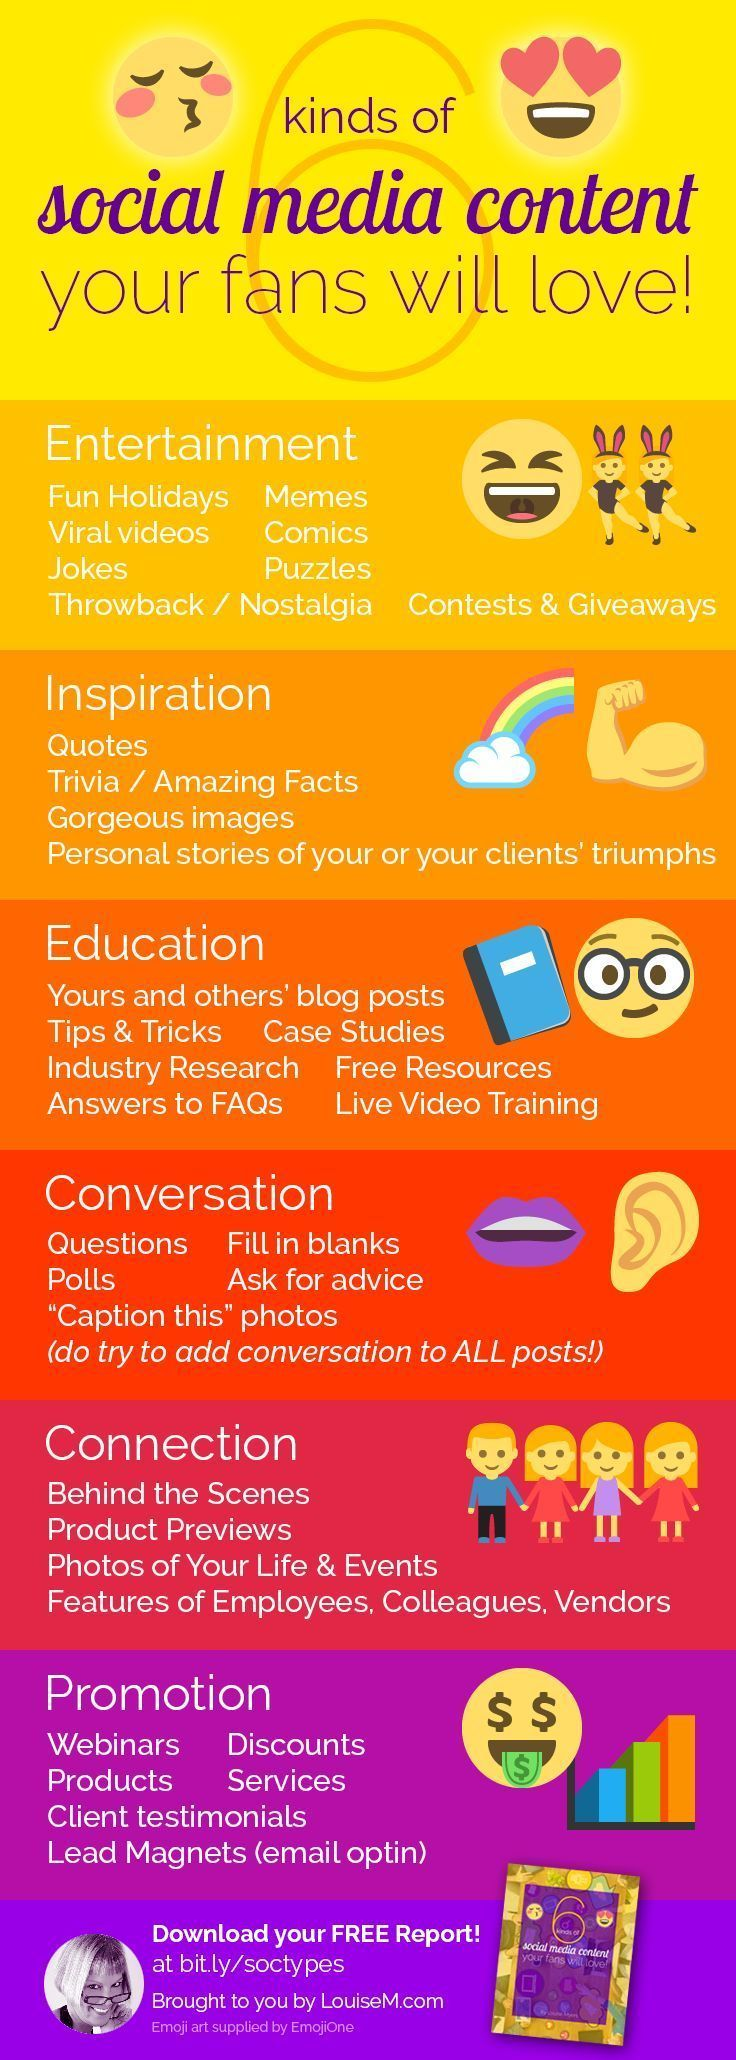 6 Social Media Content Categories To Delight Your Fans Gallery